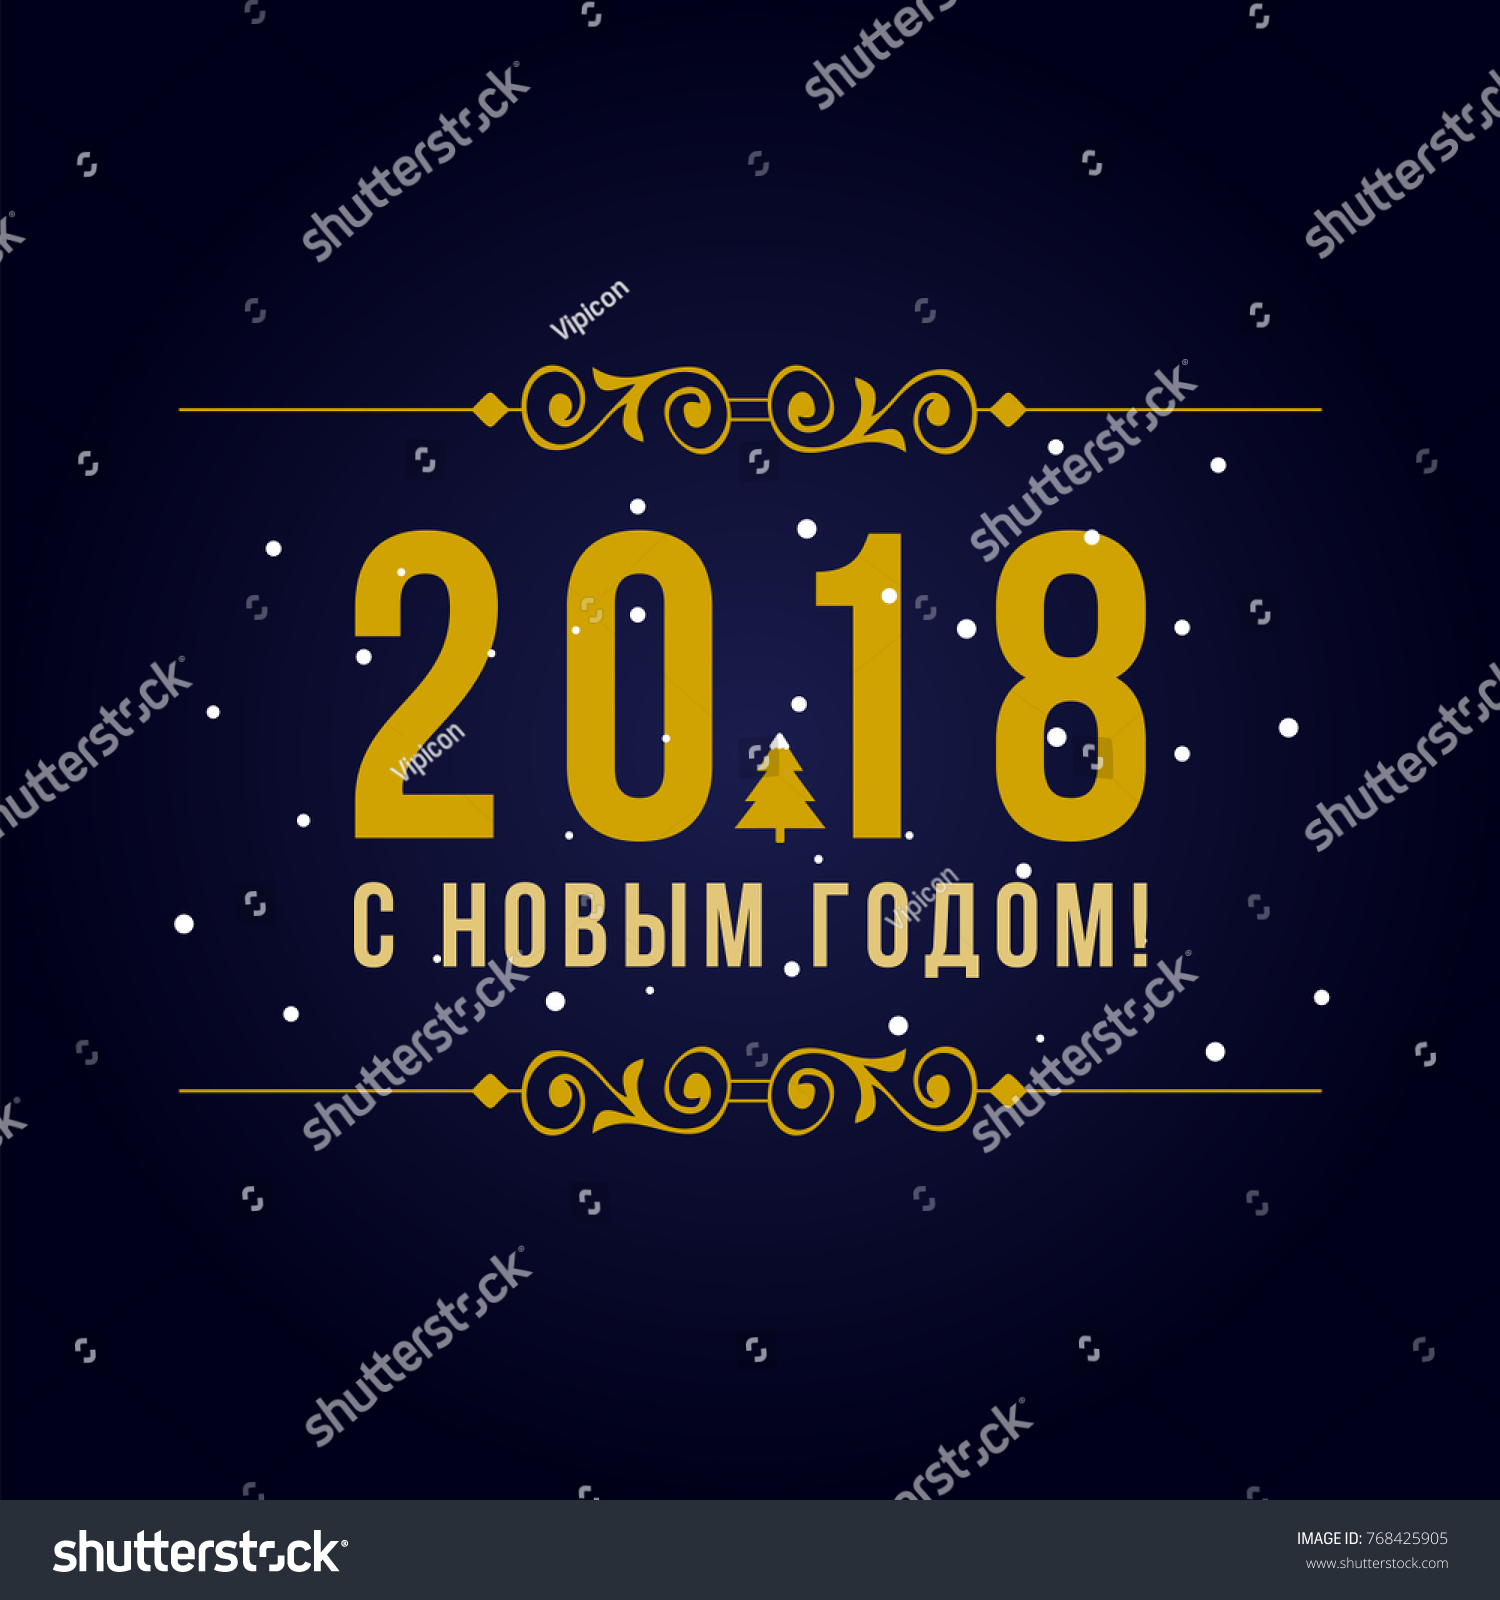 Christmas vector illustration translation russian happy stock vector translation from russian happy new year usable for holiday banners m4hsunfo